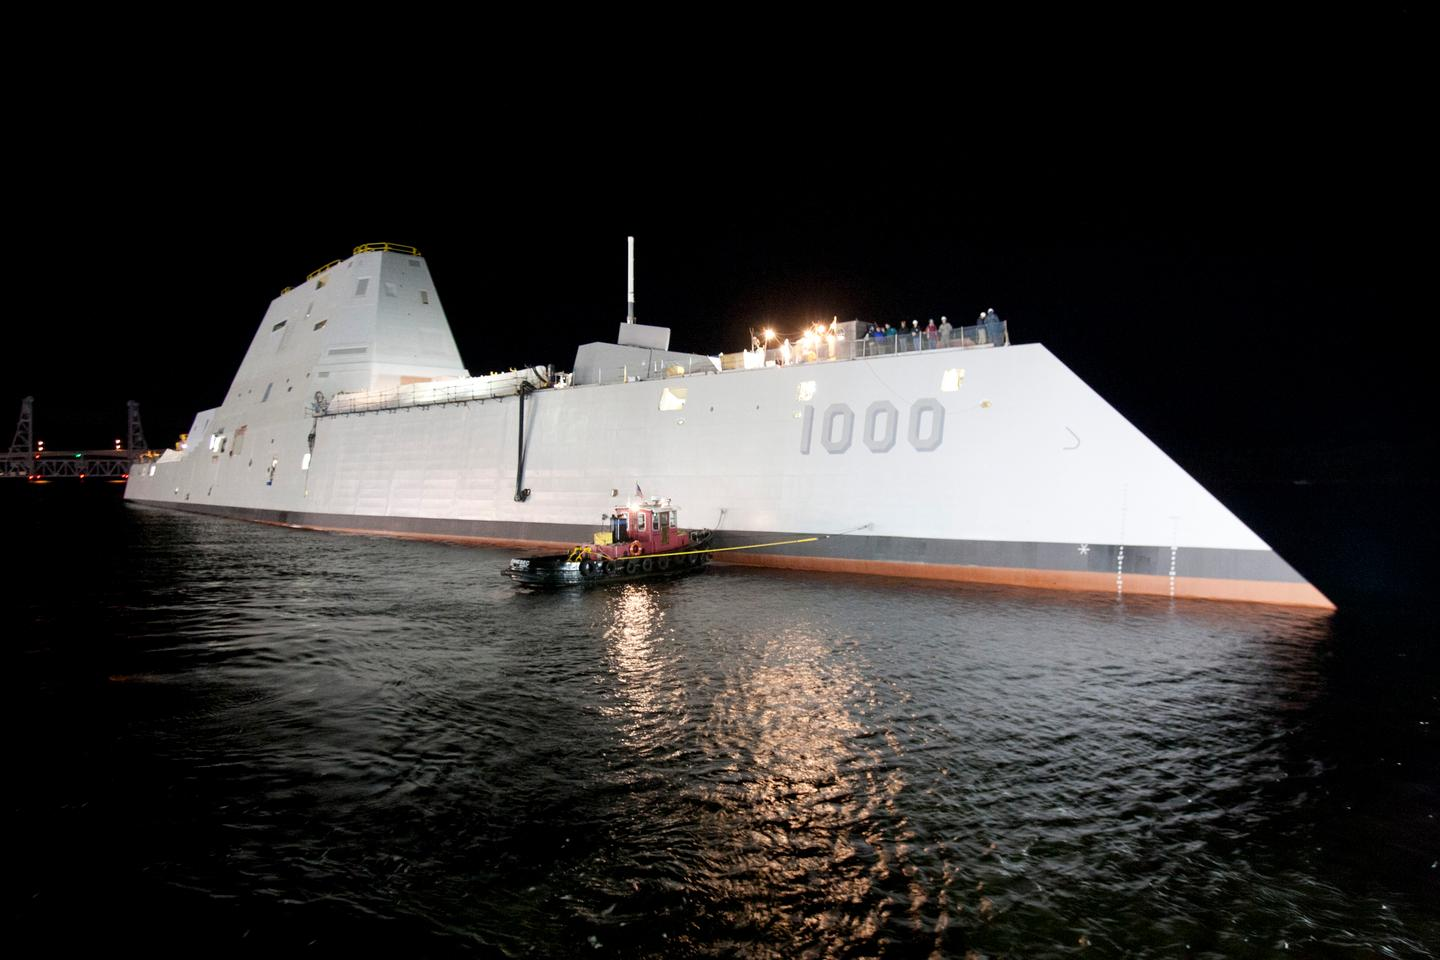 Spinel windows can have applications as electro-optical/infrared deckhouse windows in the new class of US Navy destroyers, like the USS Elmo Zumwalt pictured (Photo: US Navy courtesy of General Dynamics)